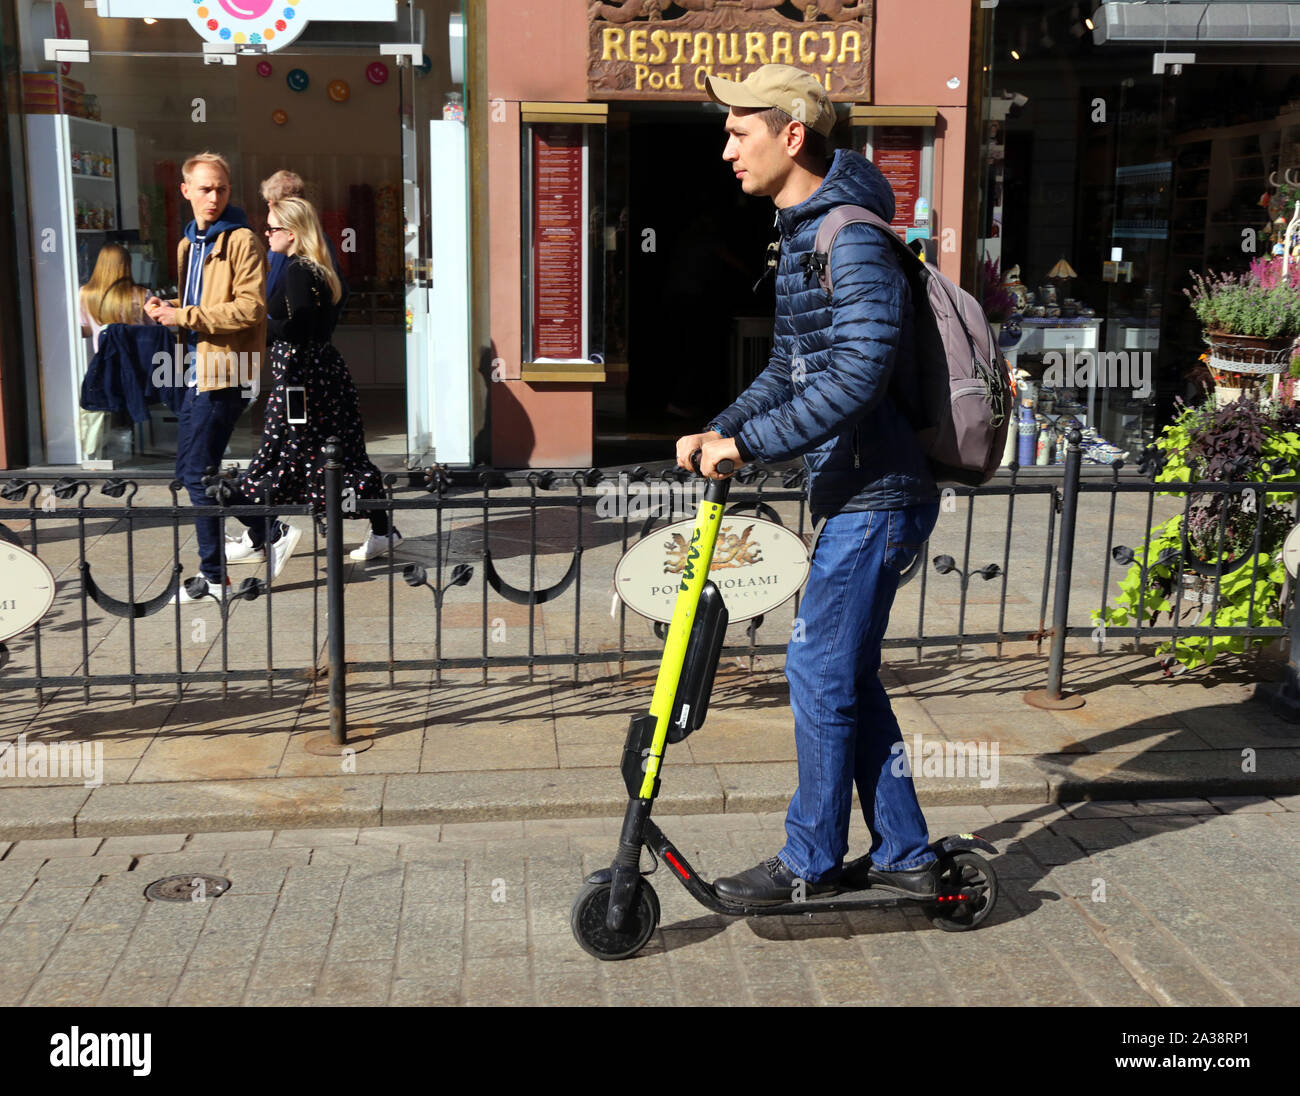 Cracow. Krakow. Poland. Young man riding electrik scooter on Grodzka Str. center of the Old Town. Stock Photo